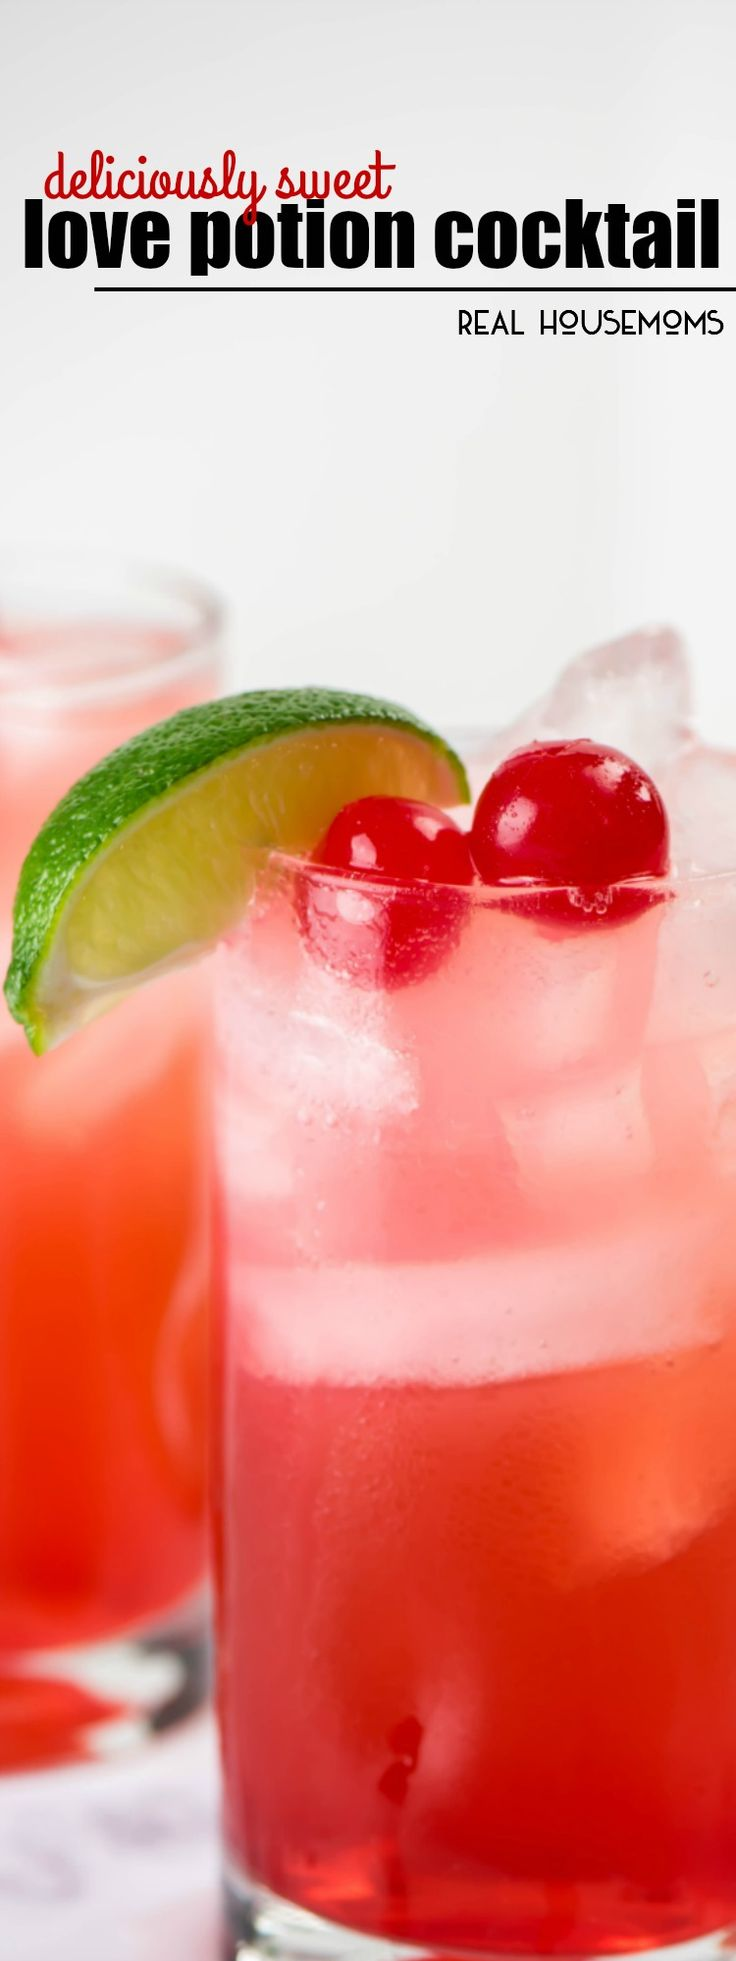 how to make love potion alcoholic drink